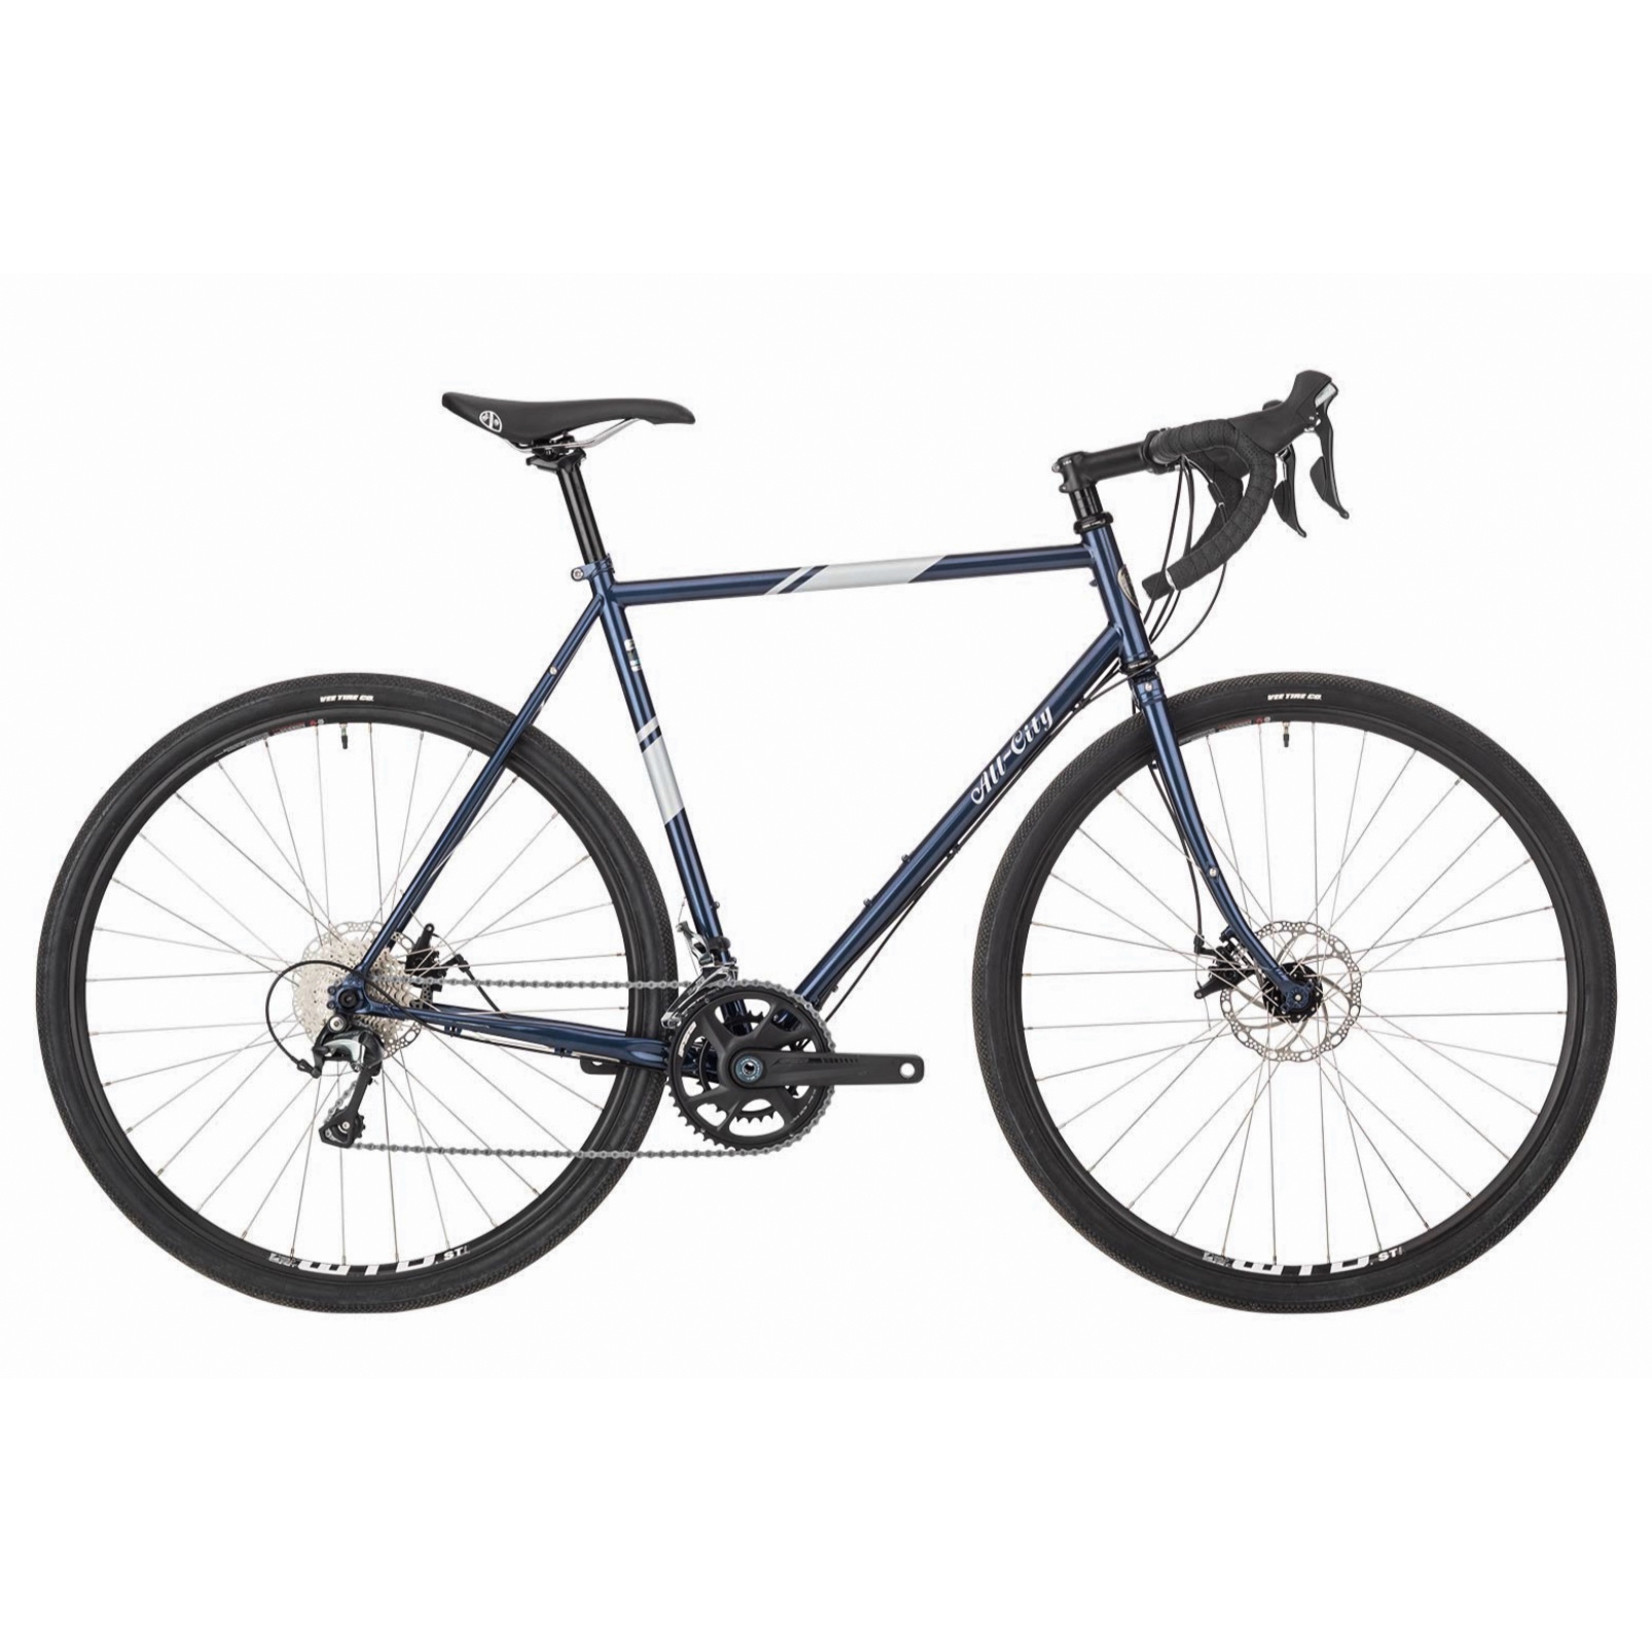 All-City All-City Space Horse Tiagra - Neptune Blue Complete Bike